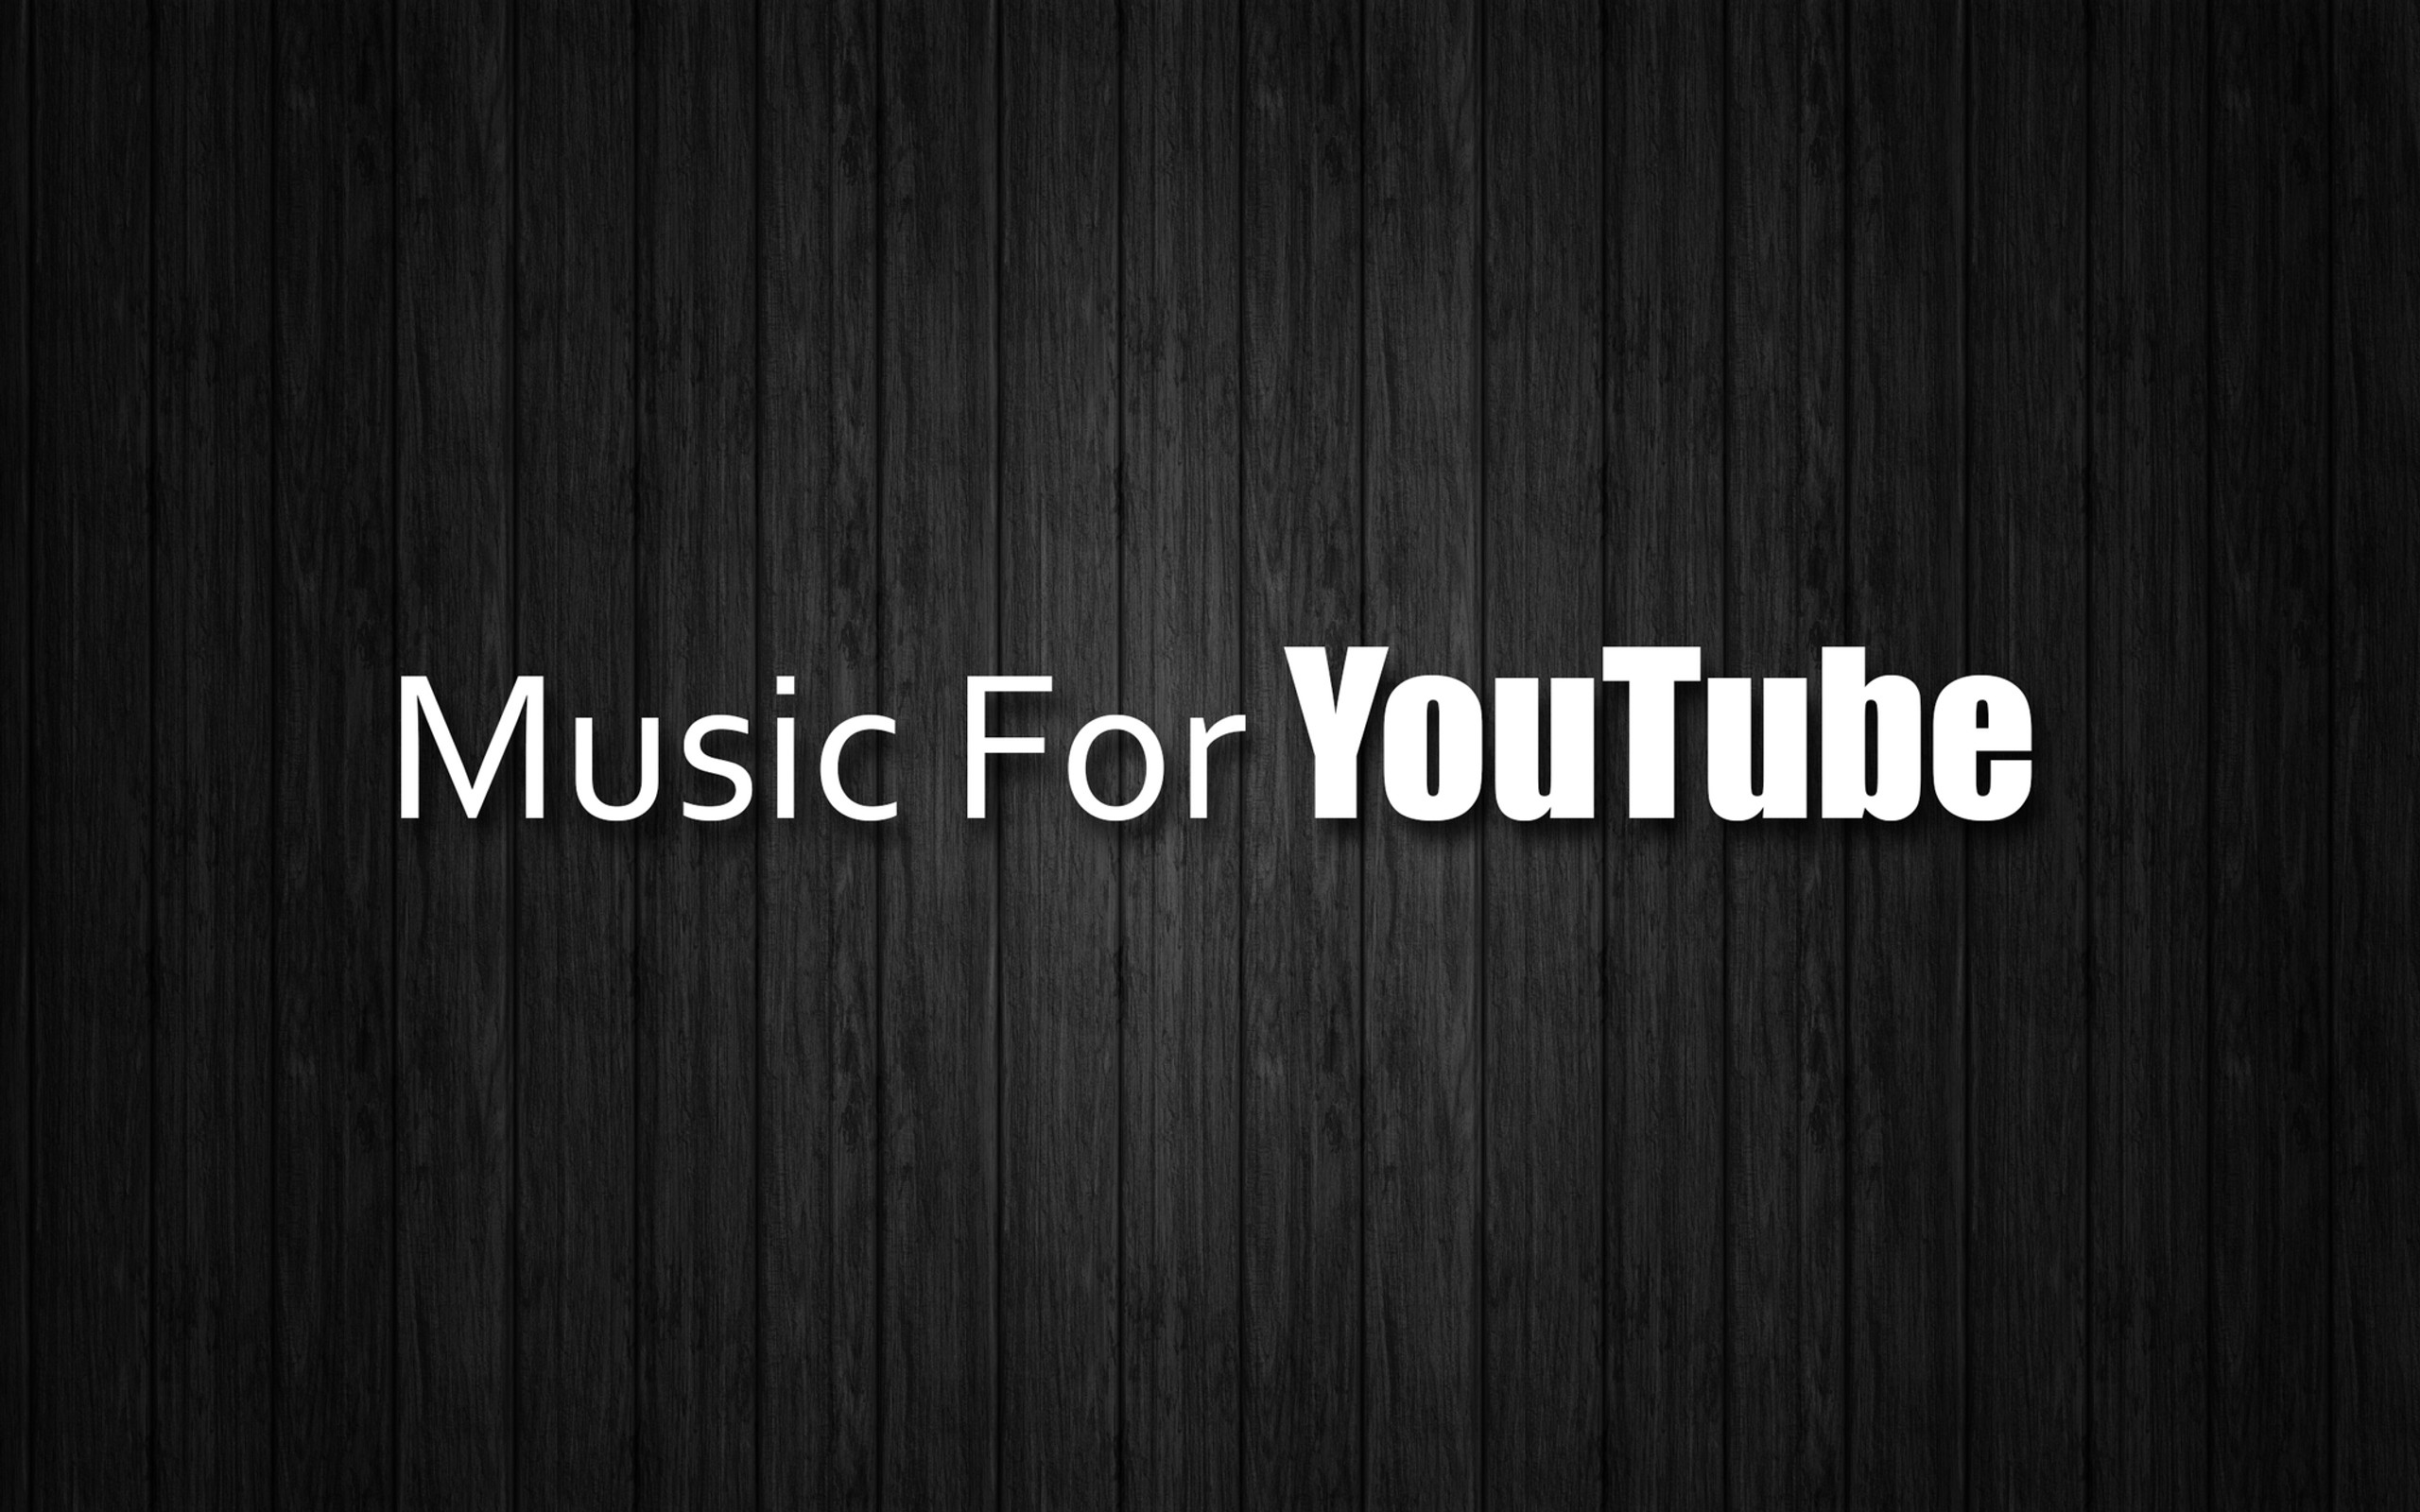 Background Music For YouTube | Free Download - AShamaluevMusic